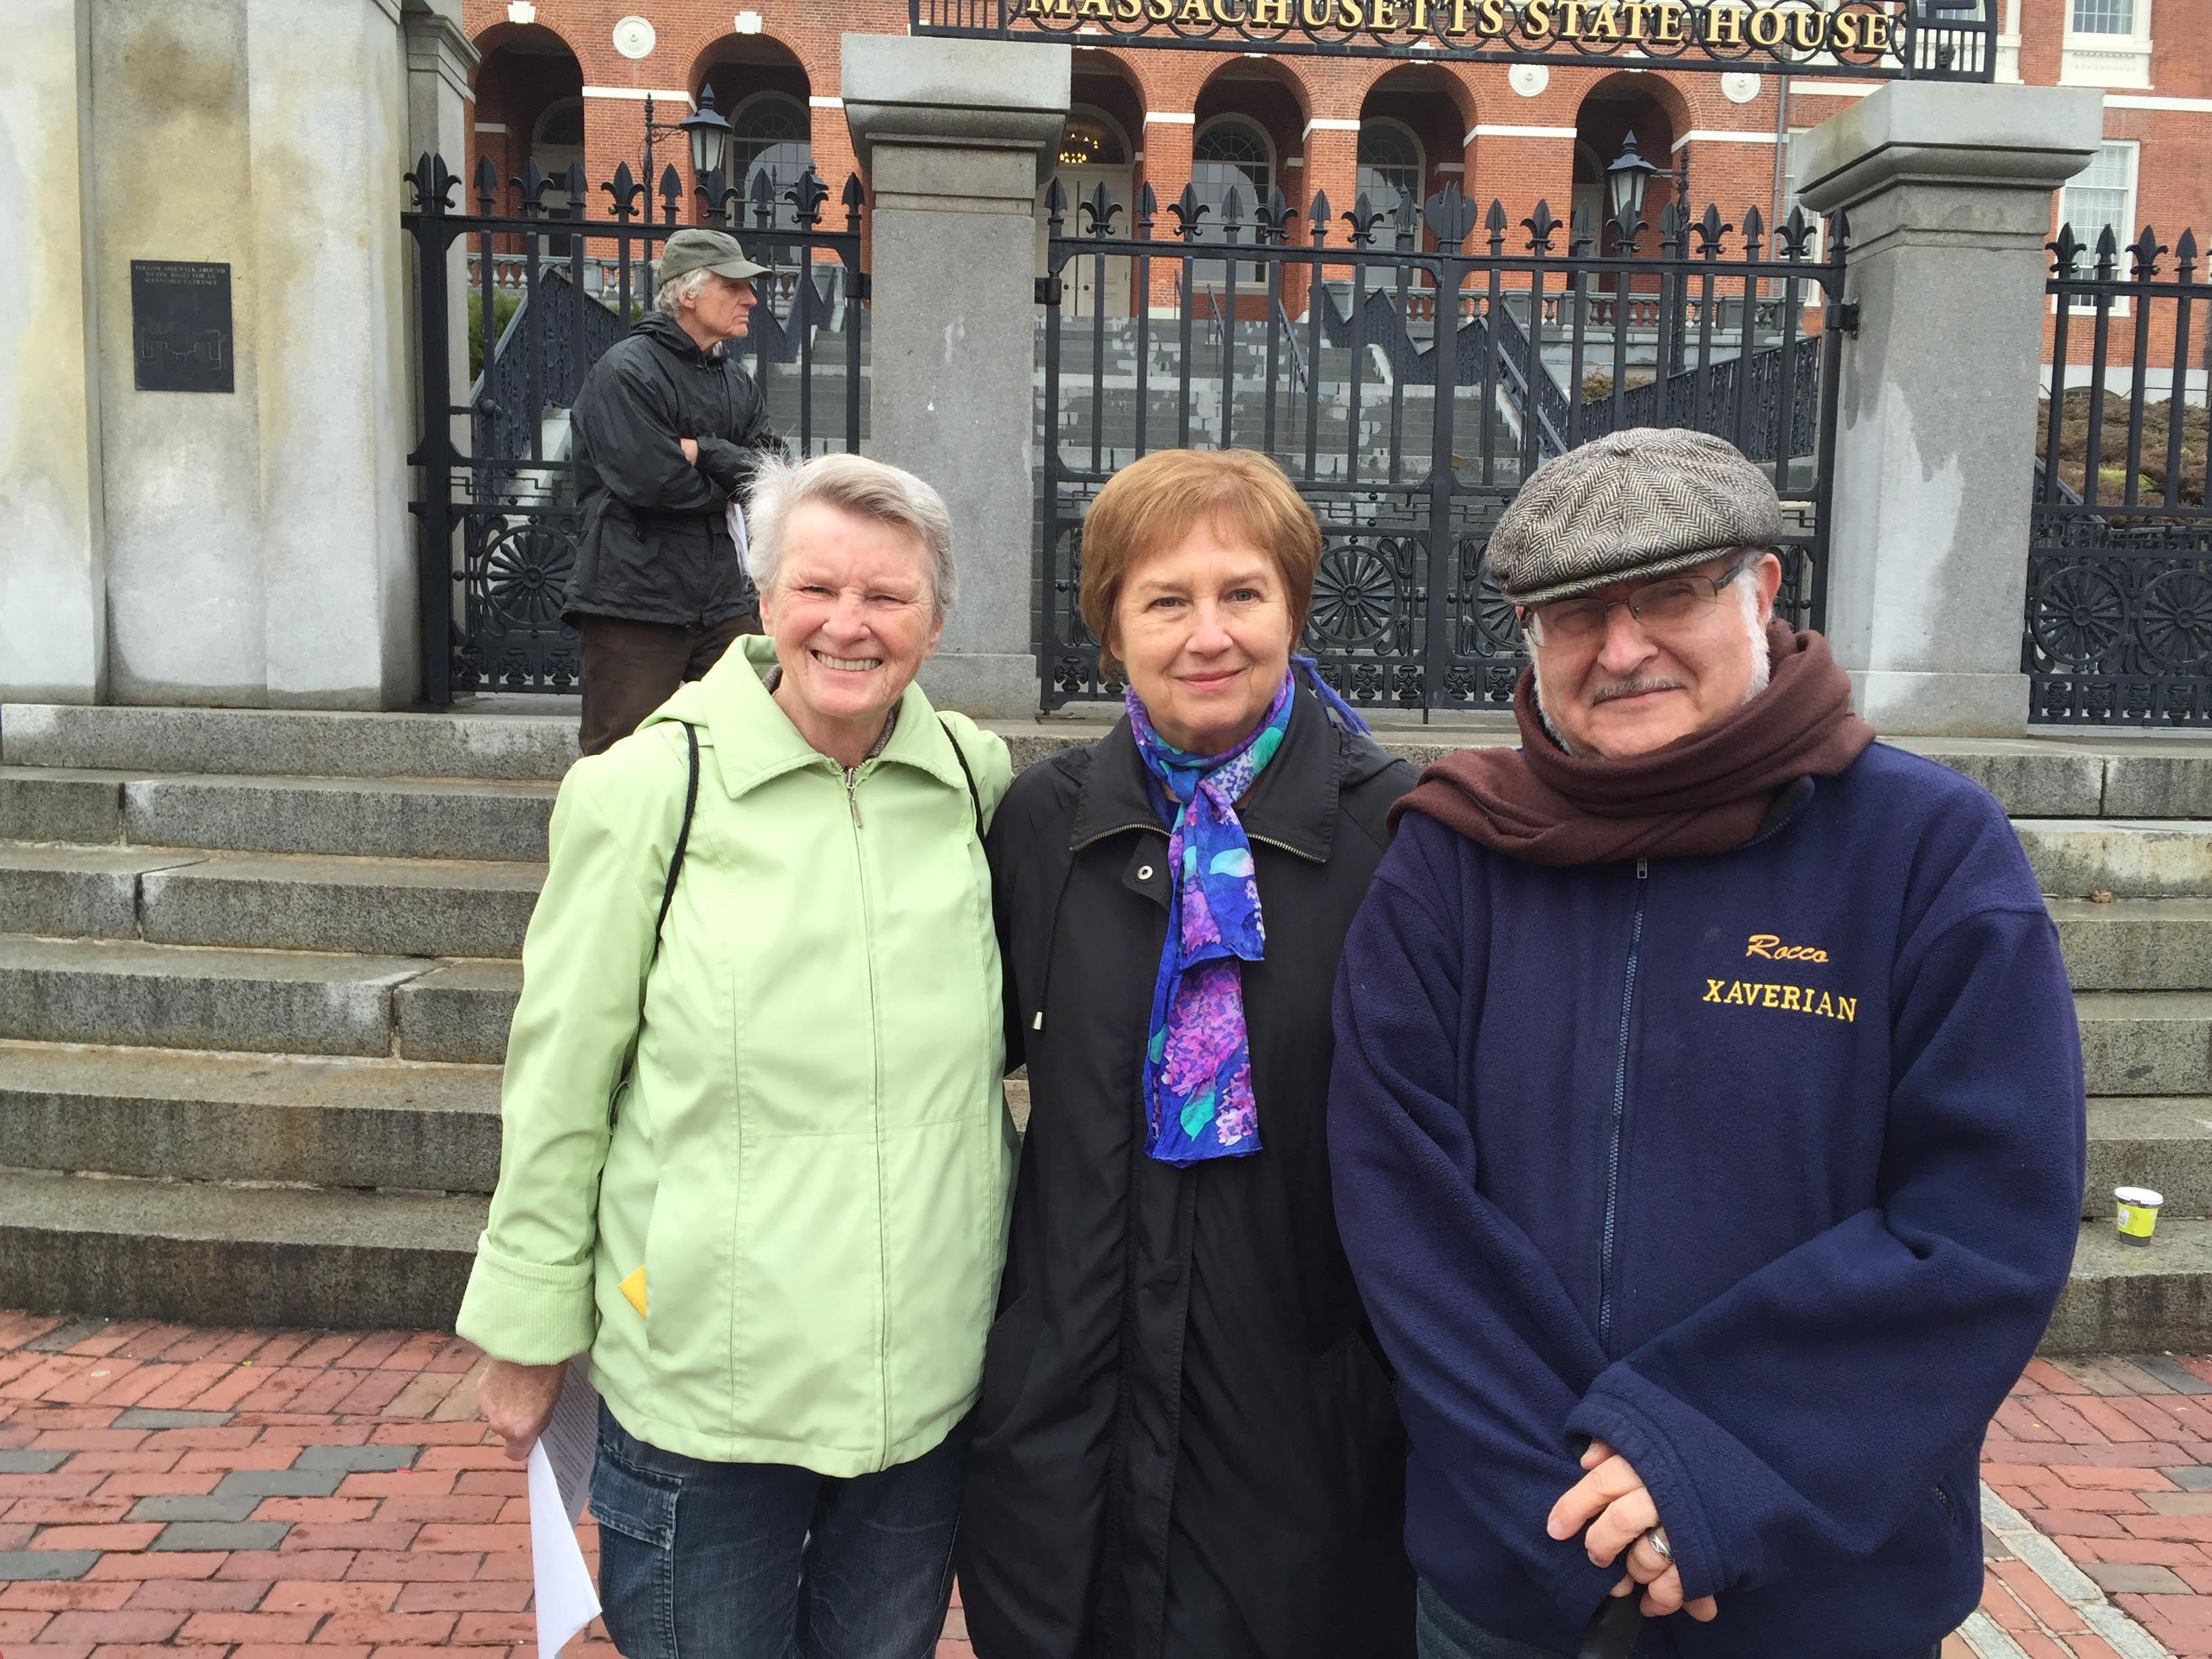 Members at the State House